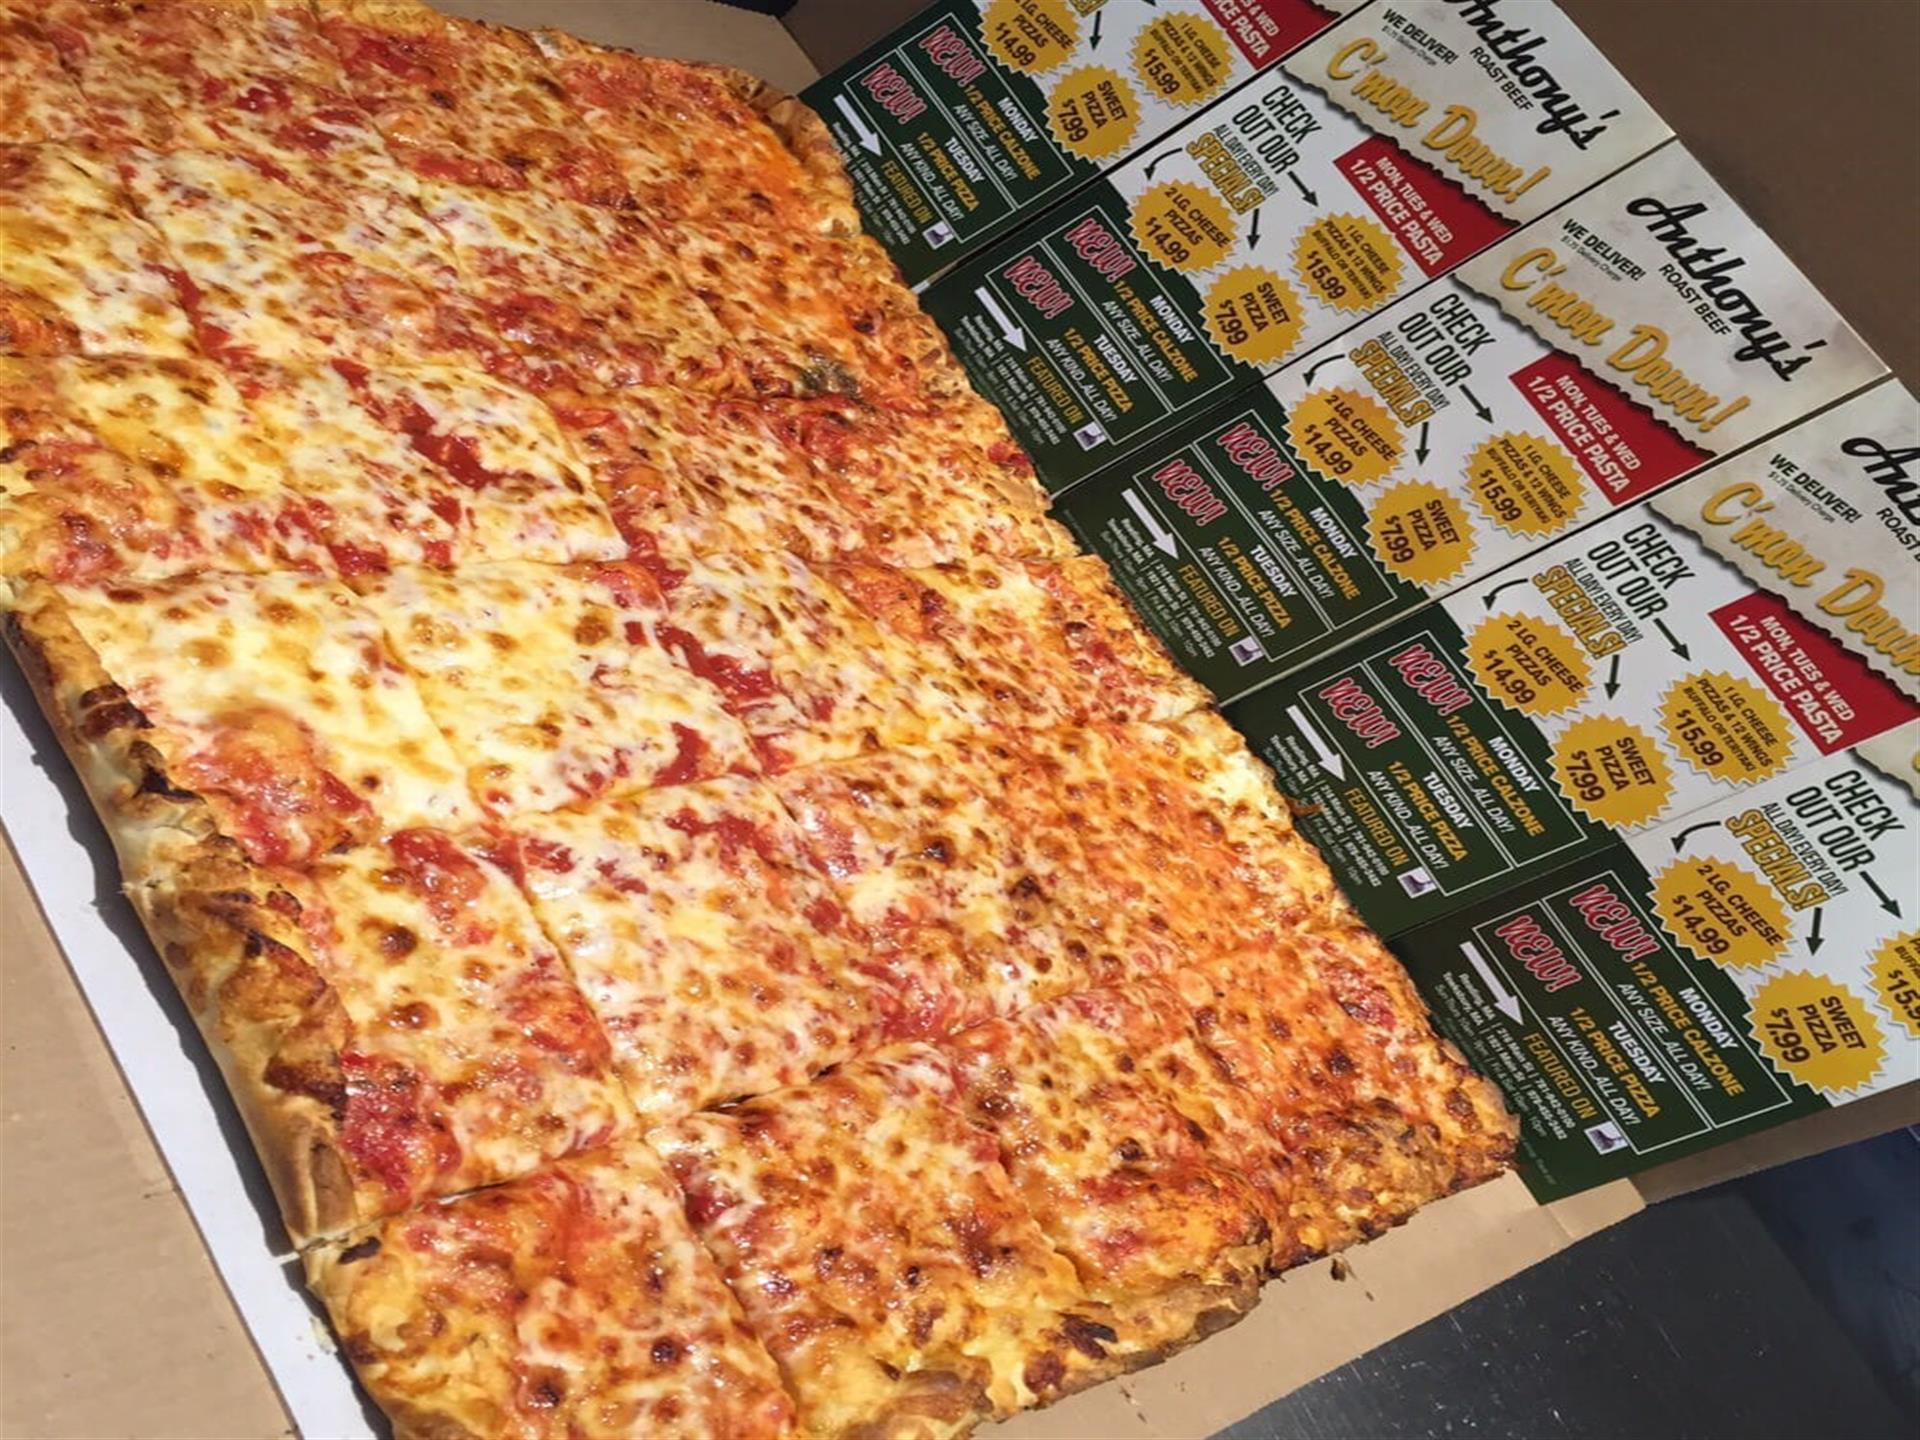 Party size pizza. 24 square slices.  Behind pizza are Anthony's coupons.